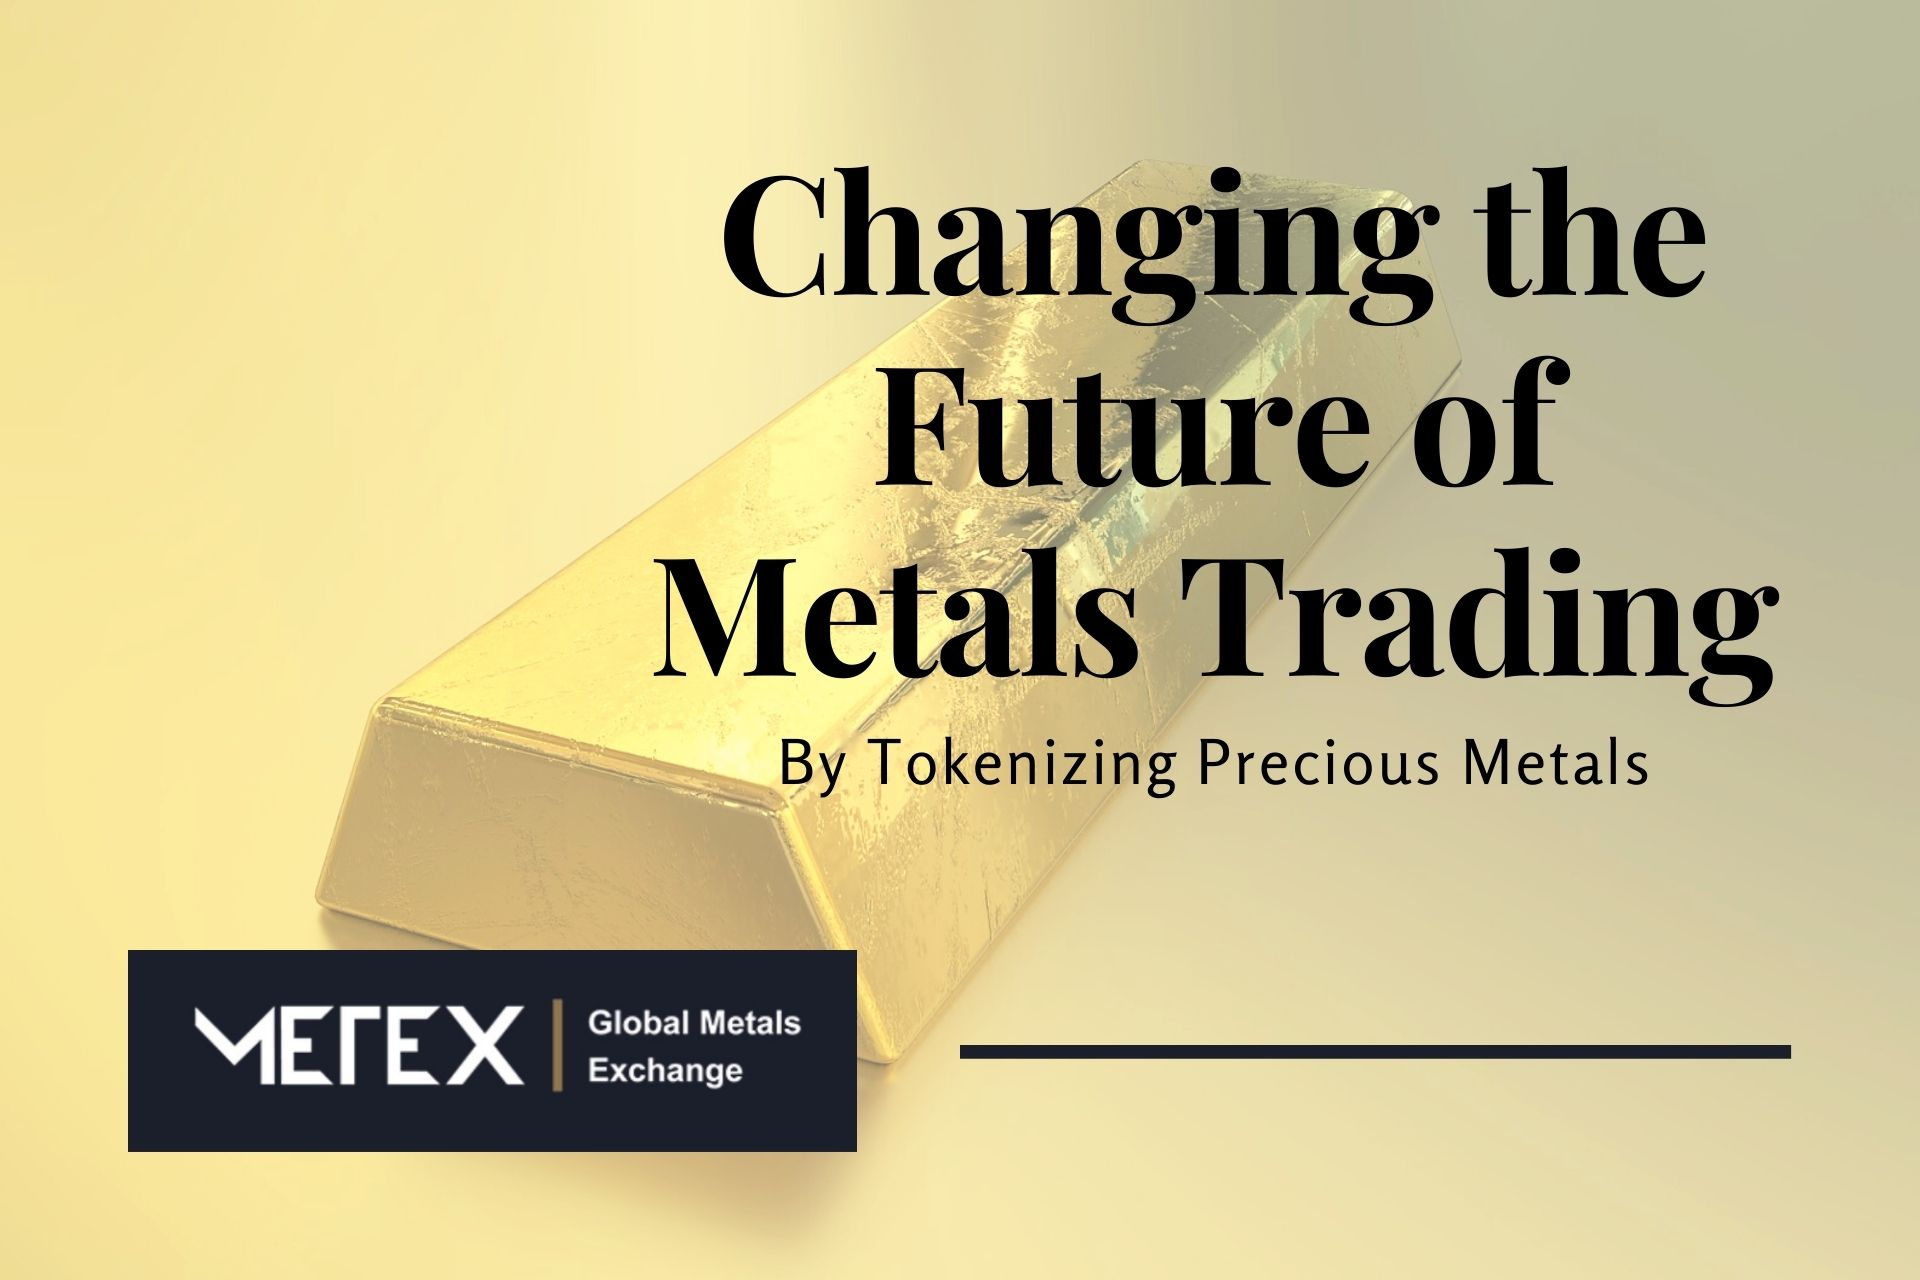 Metex Exchange